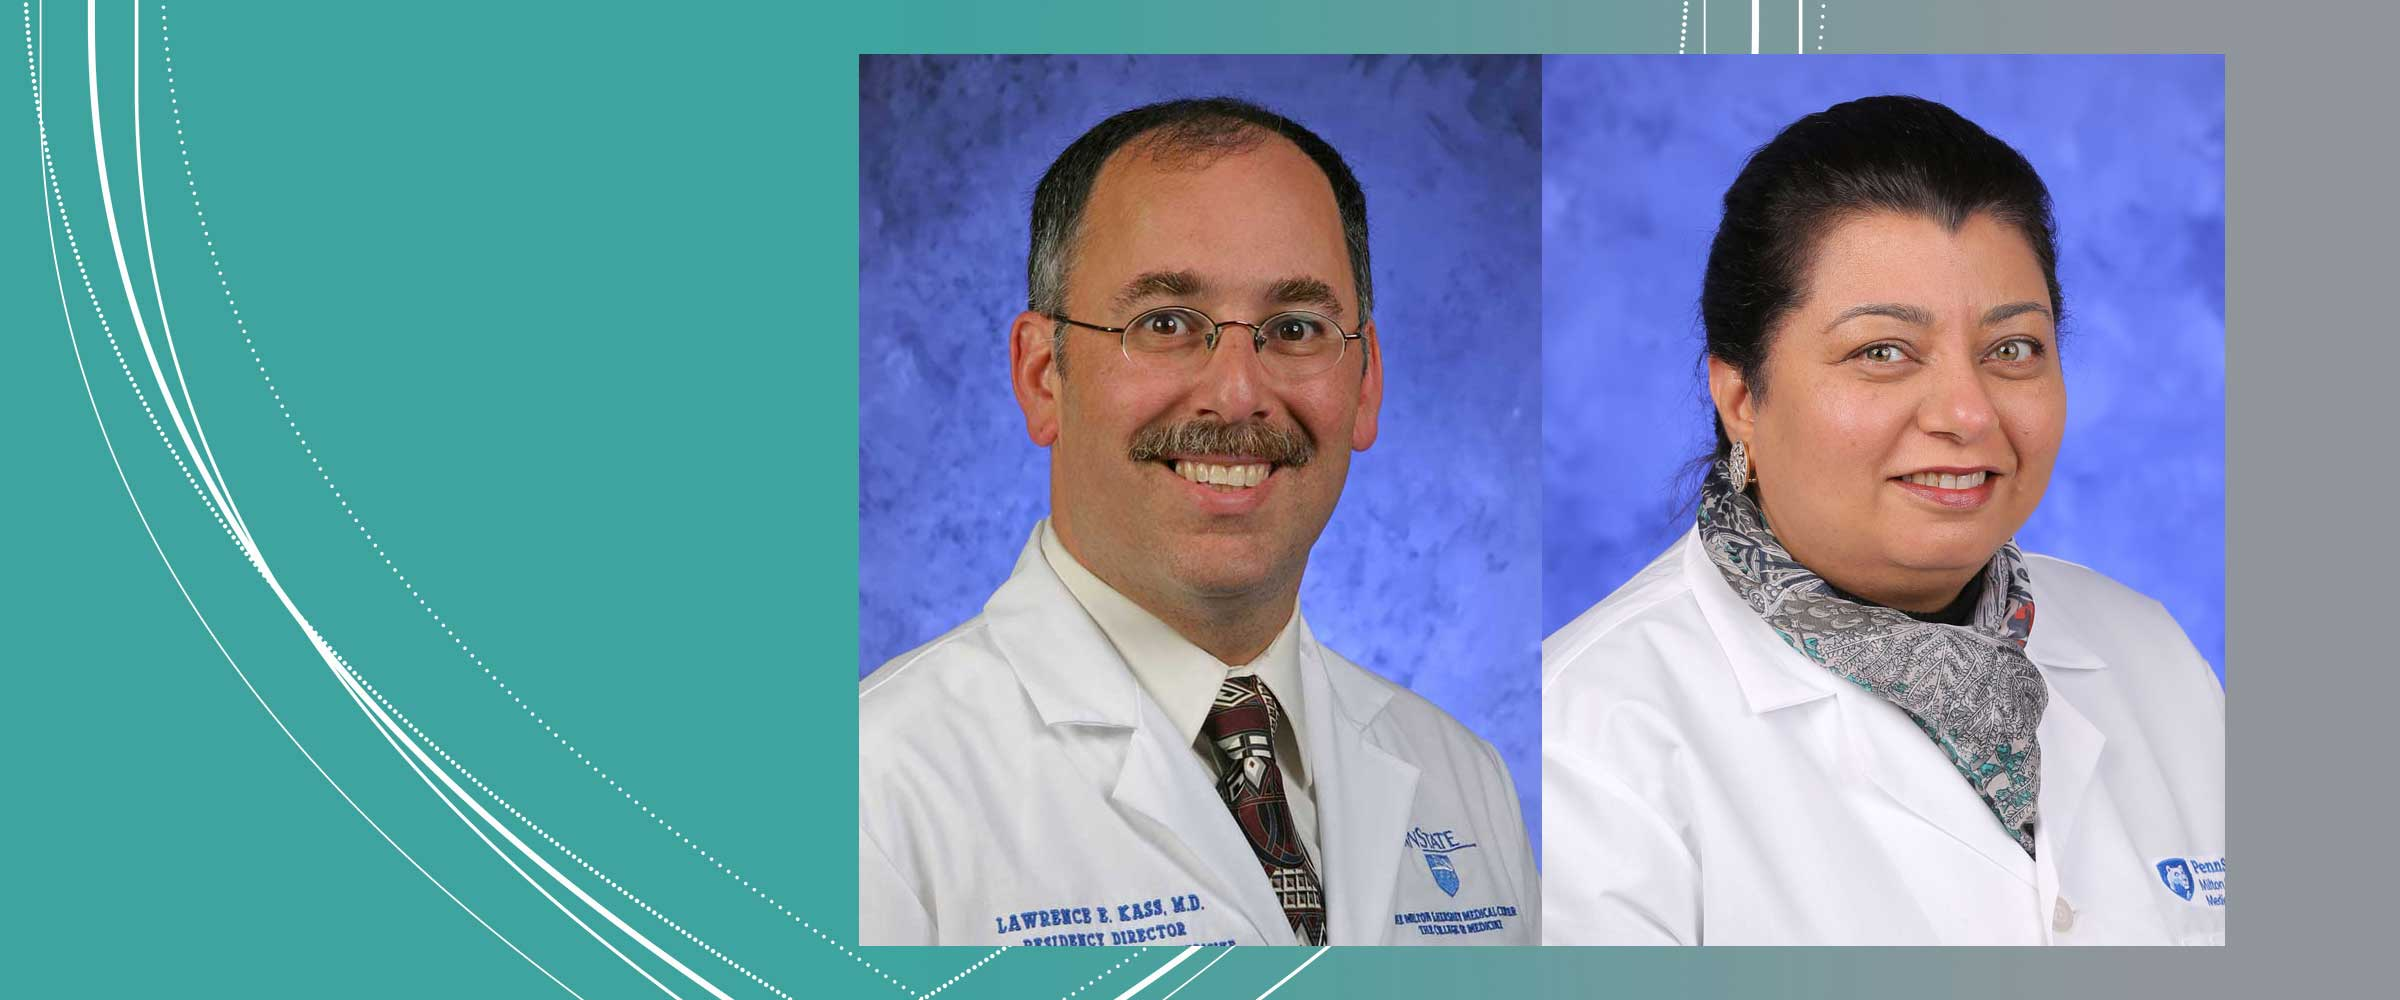 Professional head-and-shoulders photos of Dr. Lawrence Kass and Dr. Omrana Pasha are seen superimposed on an abstract background.